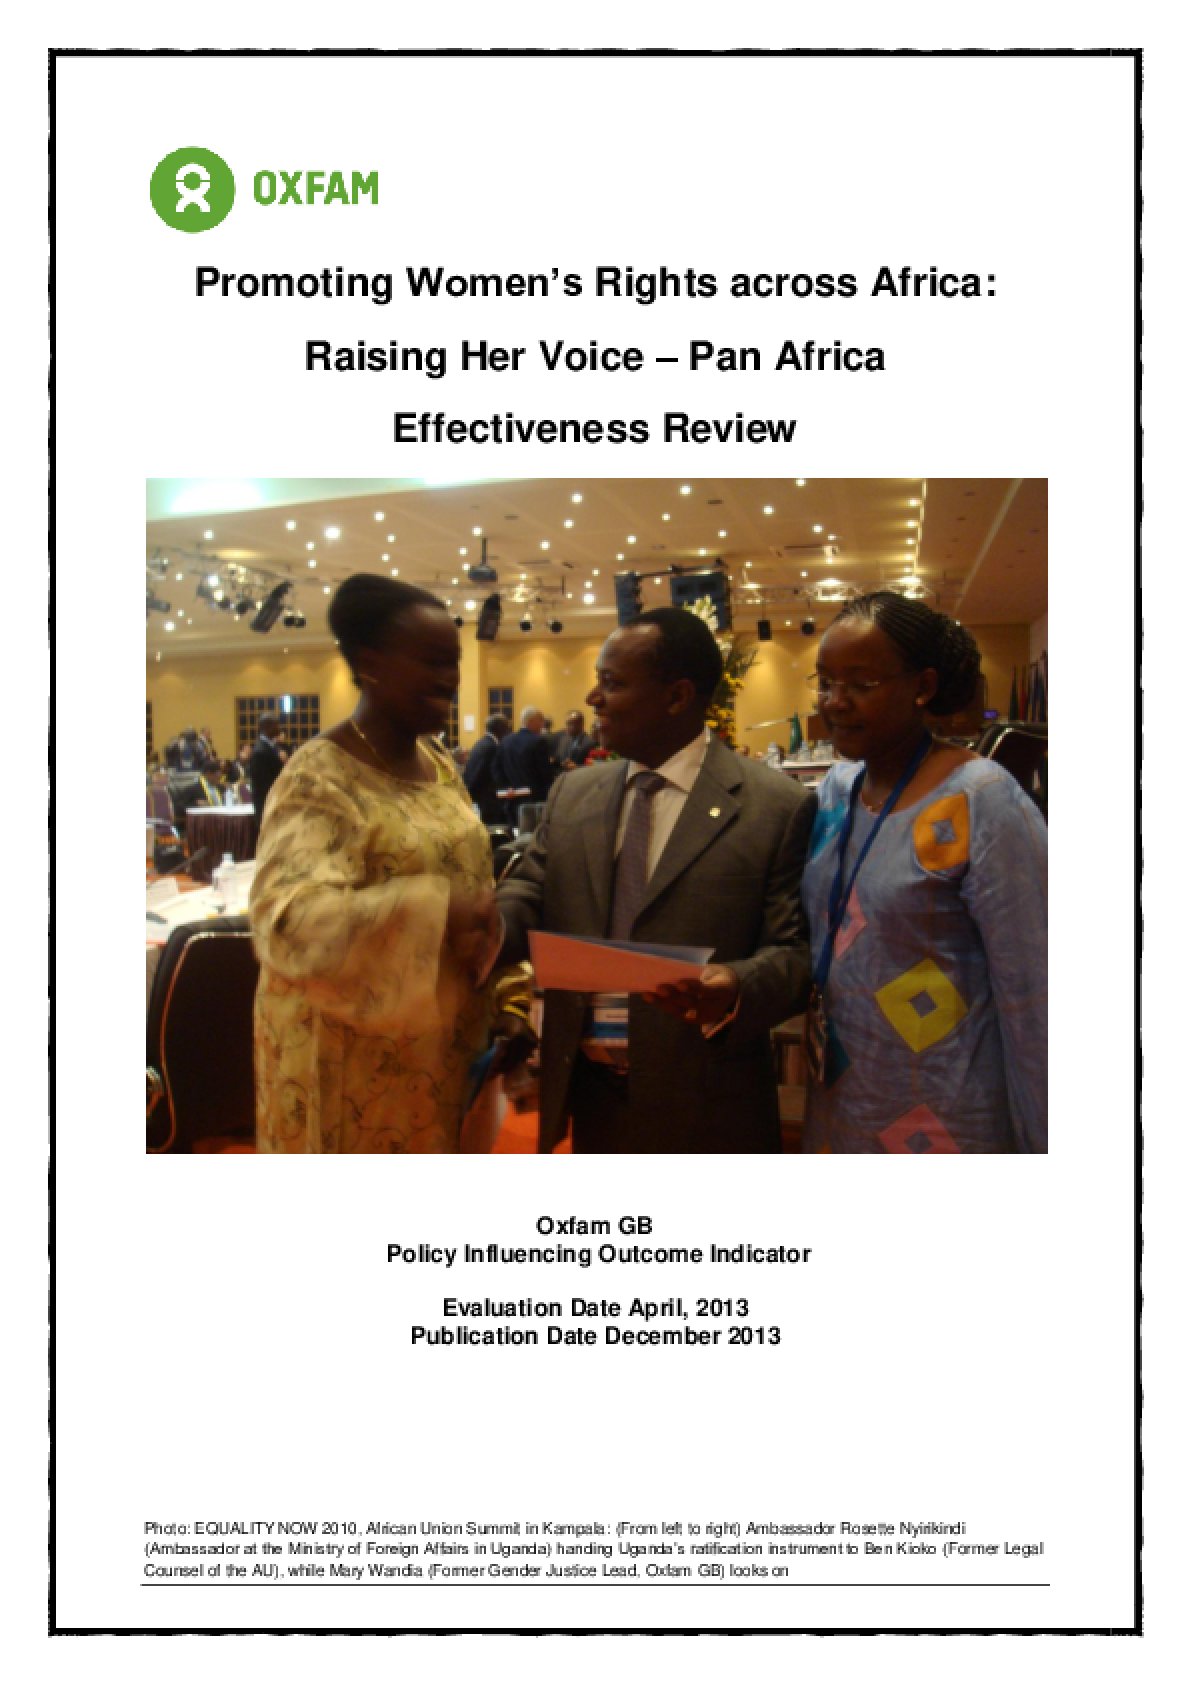 Effectiveness Review: Promoting Women's Rights Across Africa: Raising Her Voice Pan Africa